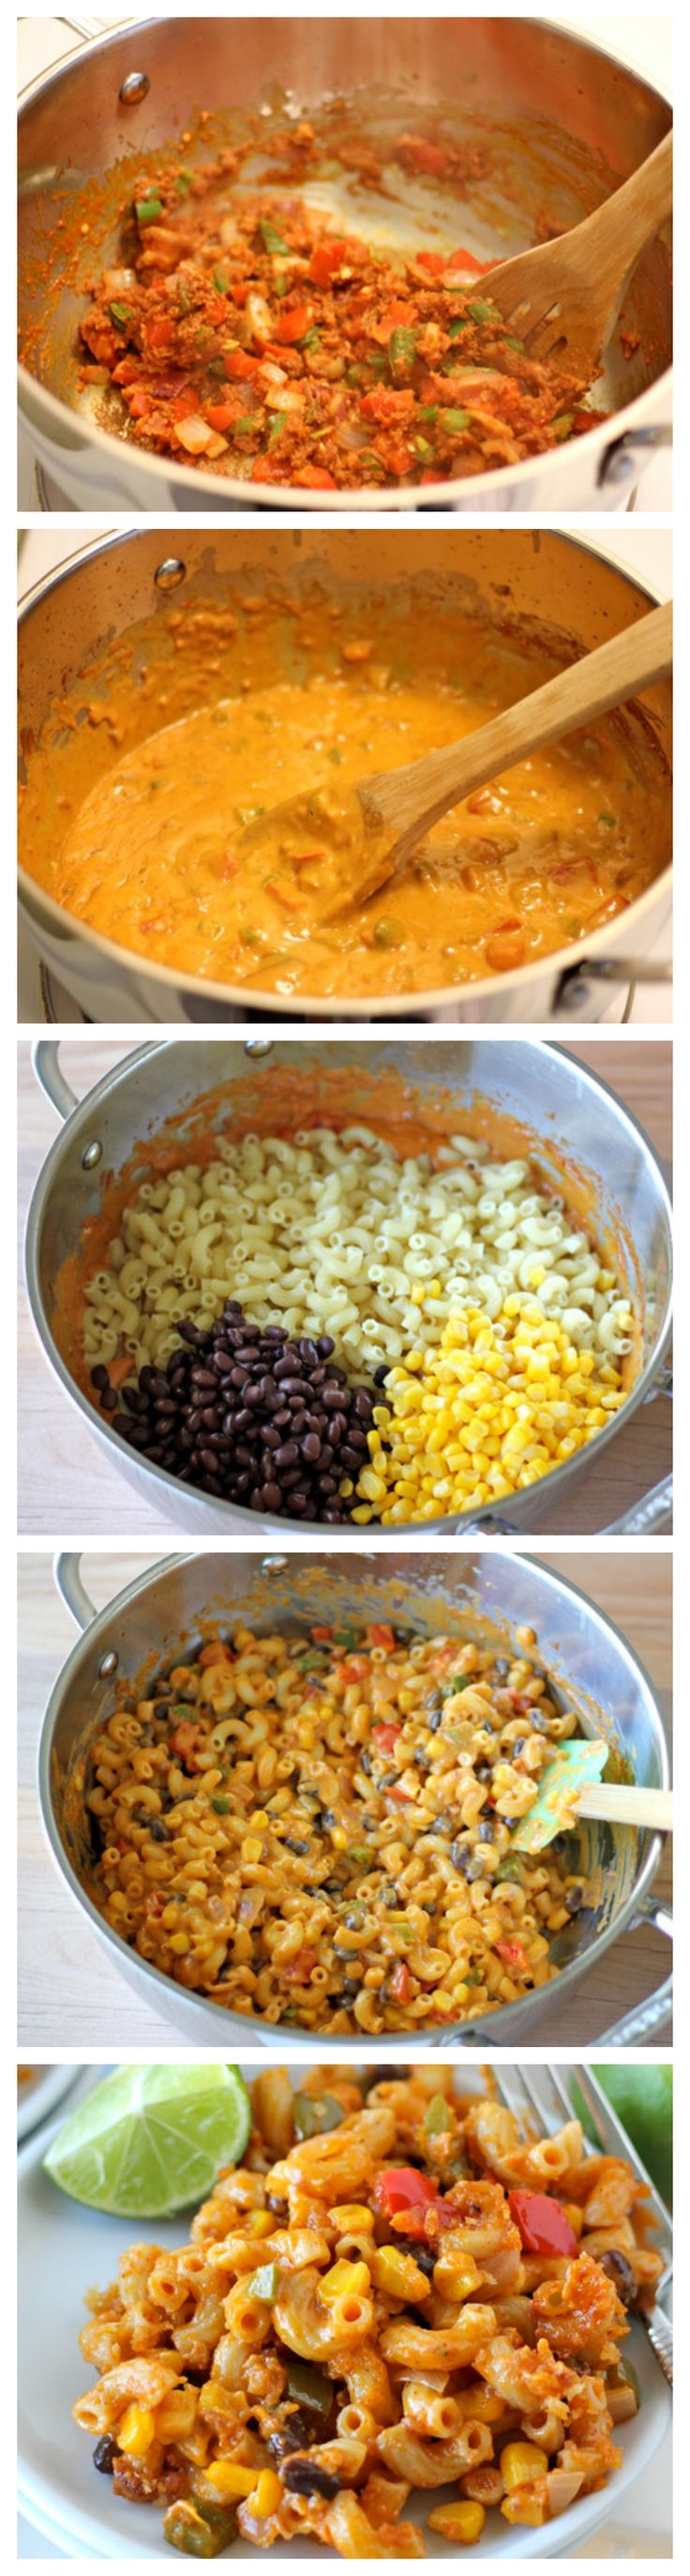 Chorizo Mac and Cheese Recipe ~ Mexican-style, veggie-loaded mac and cheese the whole family will love!